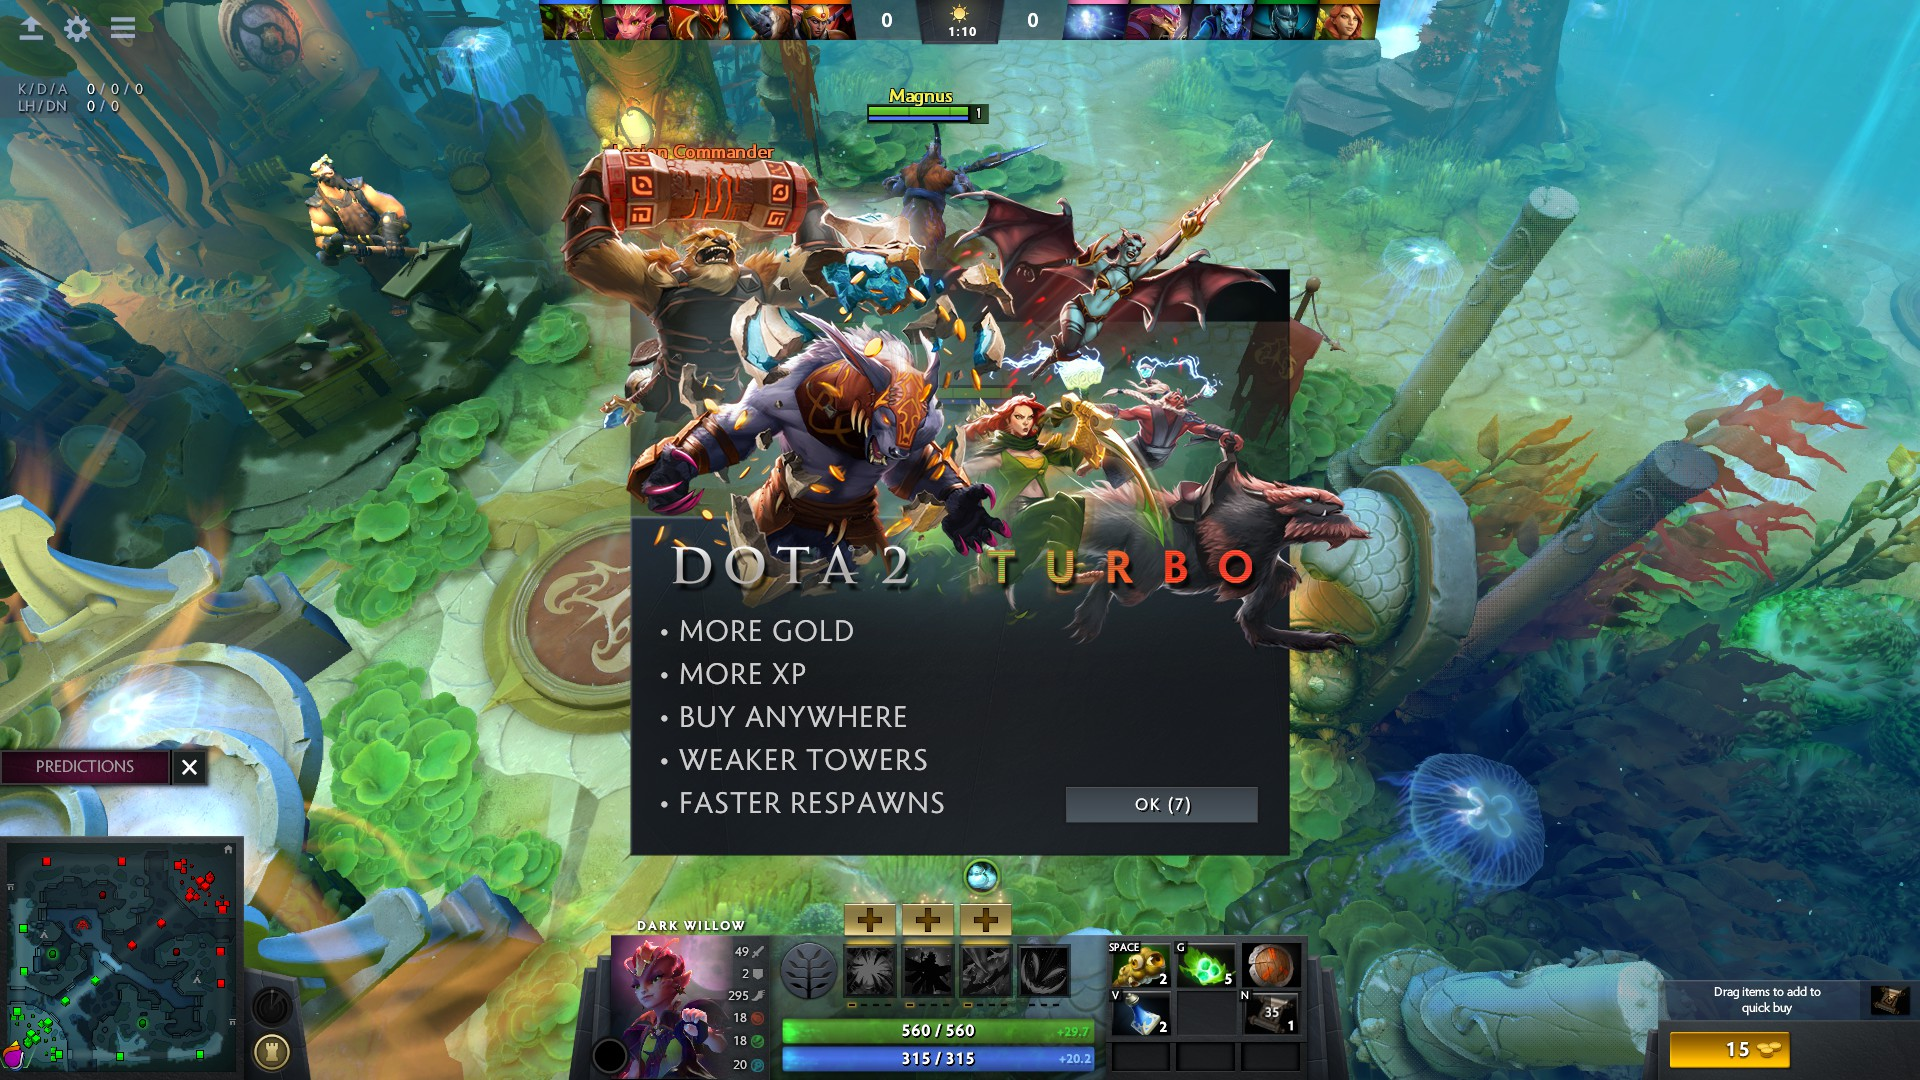 dota 2 turbo mode is the best thing valve has added to the game in